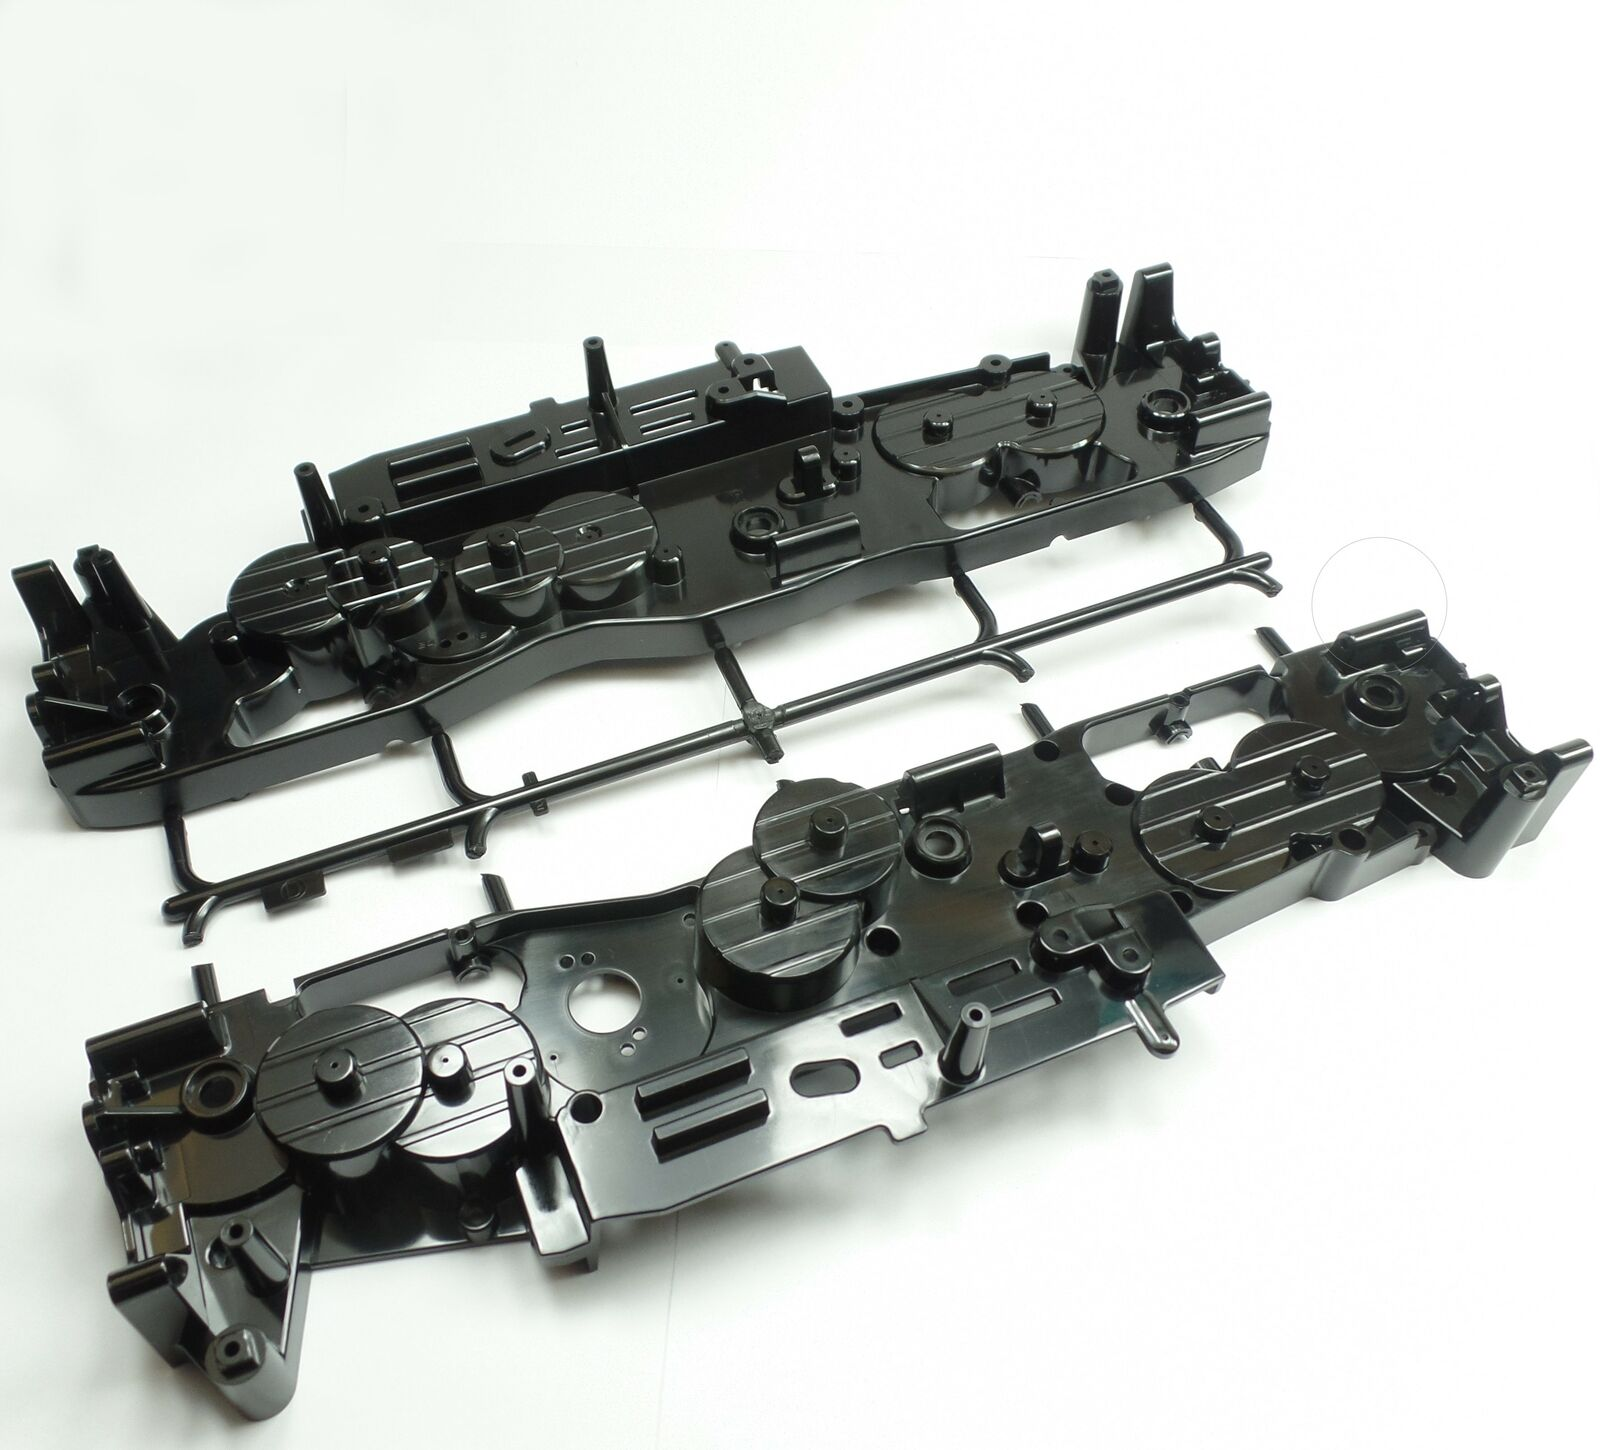 TAMIYA g6-01tr chassis 19000970 D-parti scatola del cambio chassis td6 ®